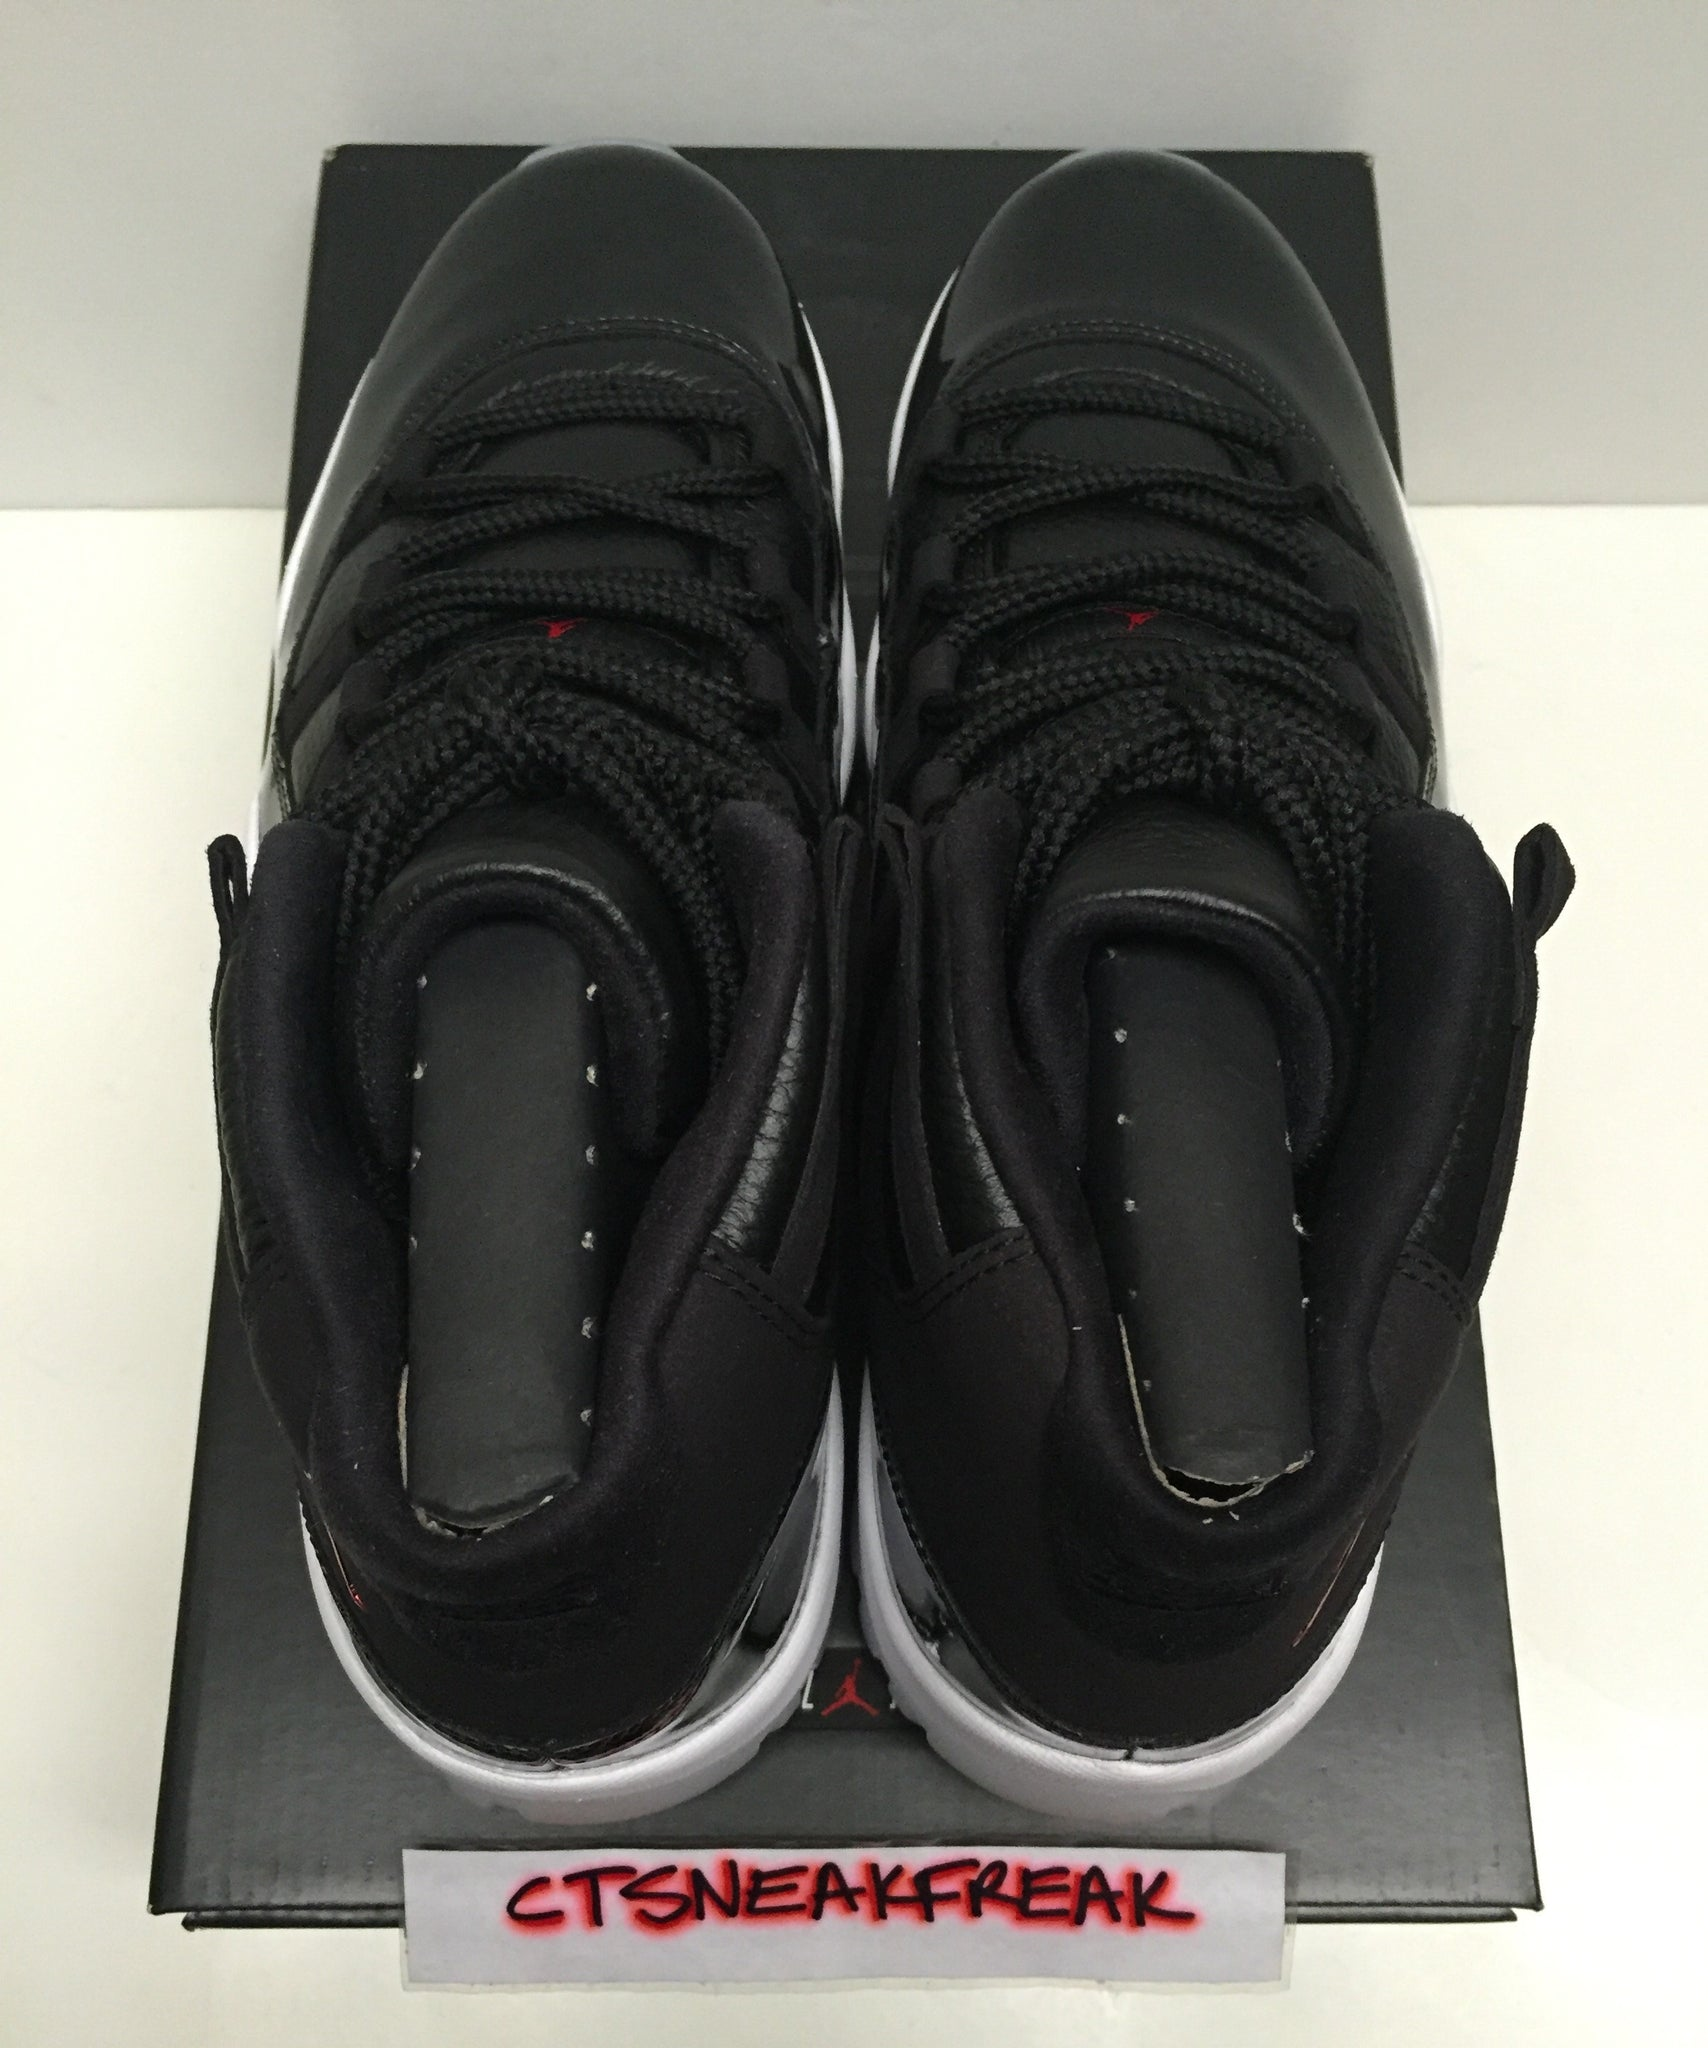 save off 8cde4 ef152 ... Load image into Gallery viewer, Nike Air Jordan 11 Retro 72-10 378037-  ...